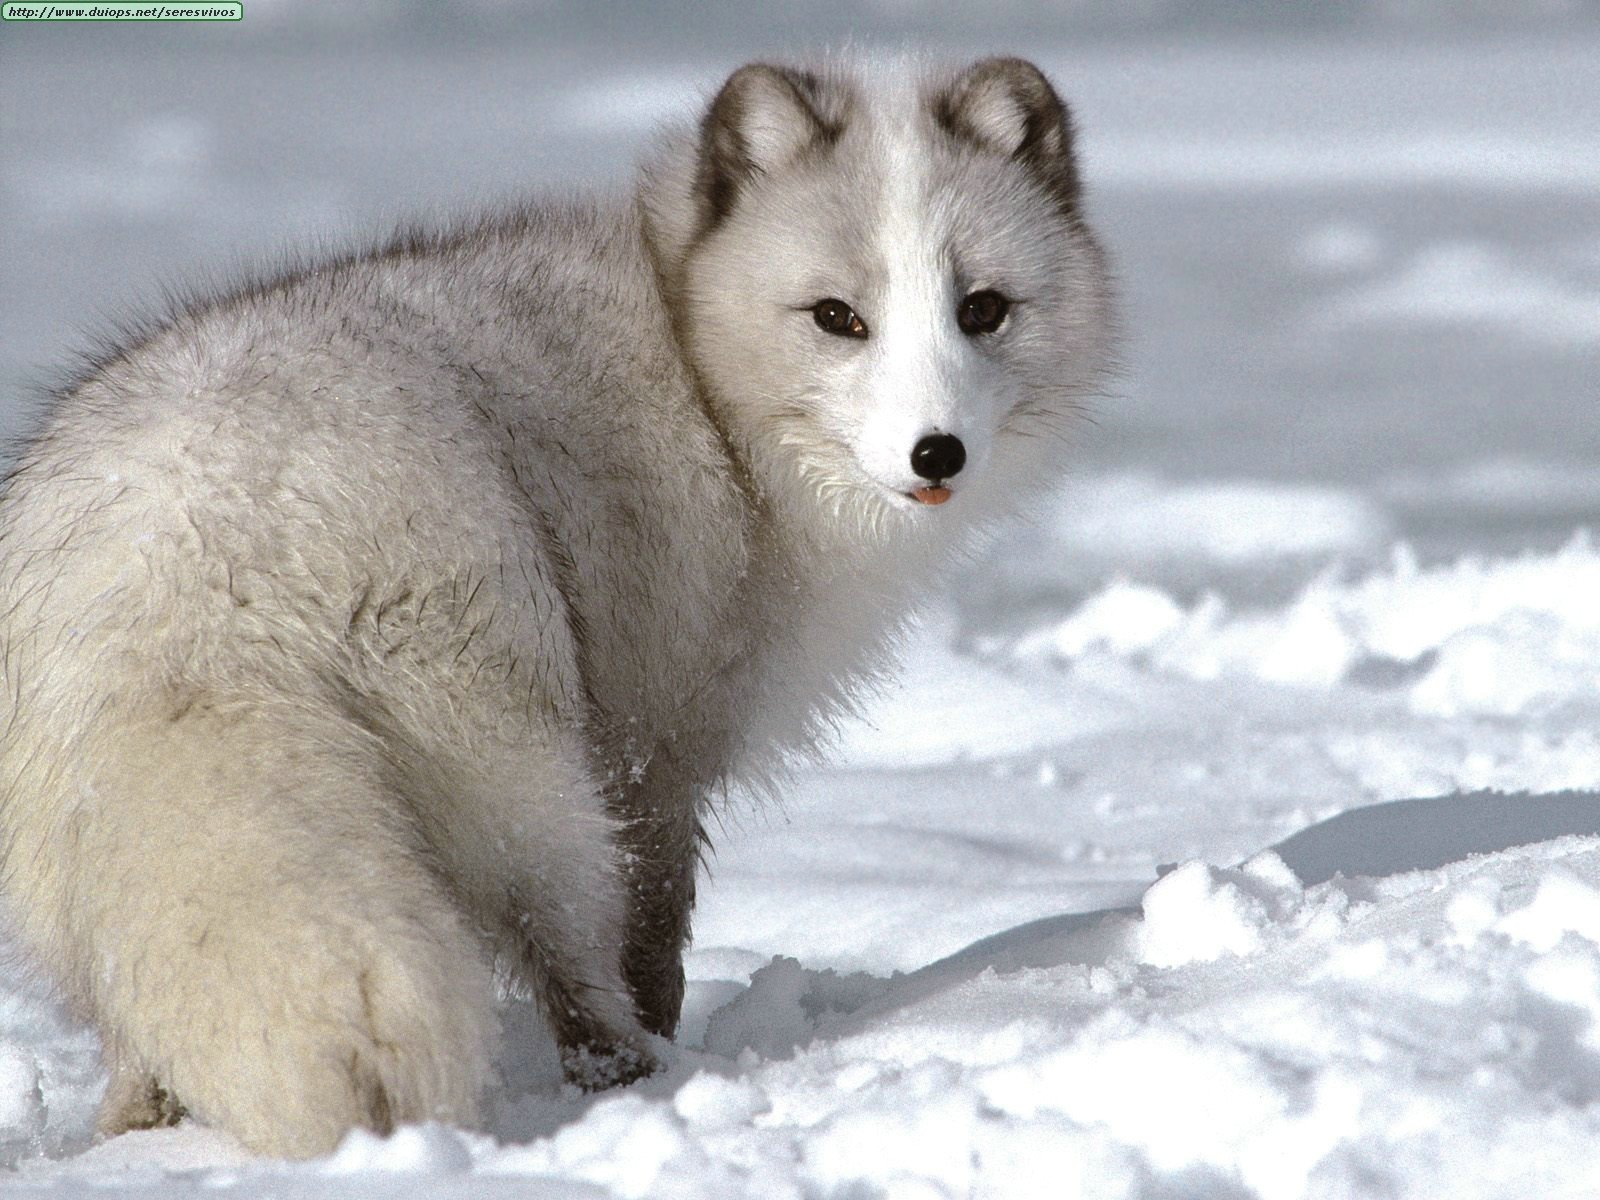 arctic fox tundra artic foxes animals snow polar fur wildlife summer wolf animal facts antarctic wolves antartic winter cub cubs